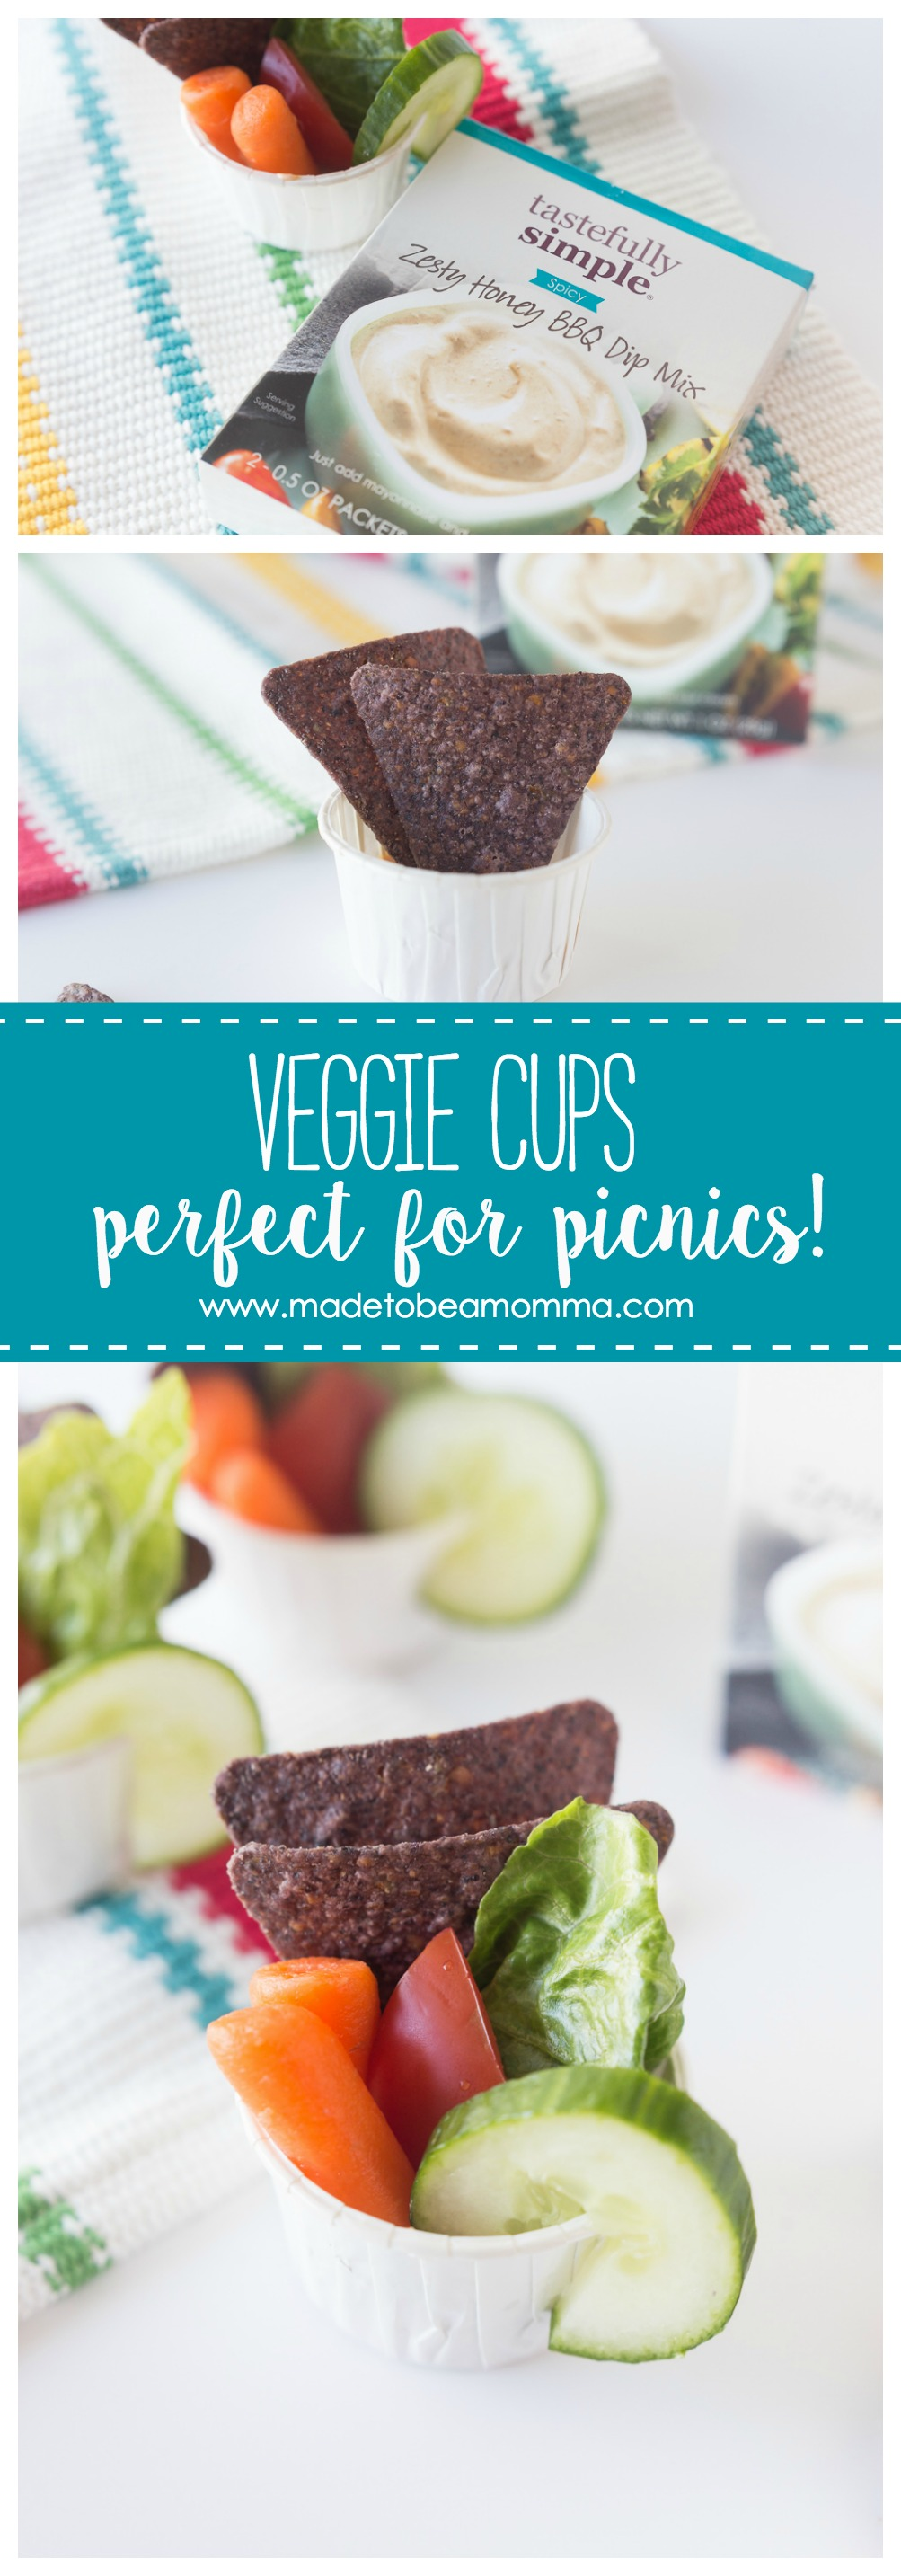 Veggie Cups Made to be a Momma